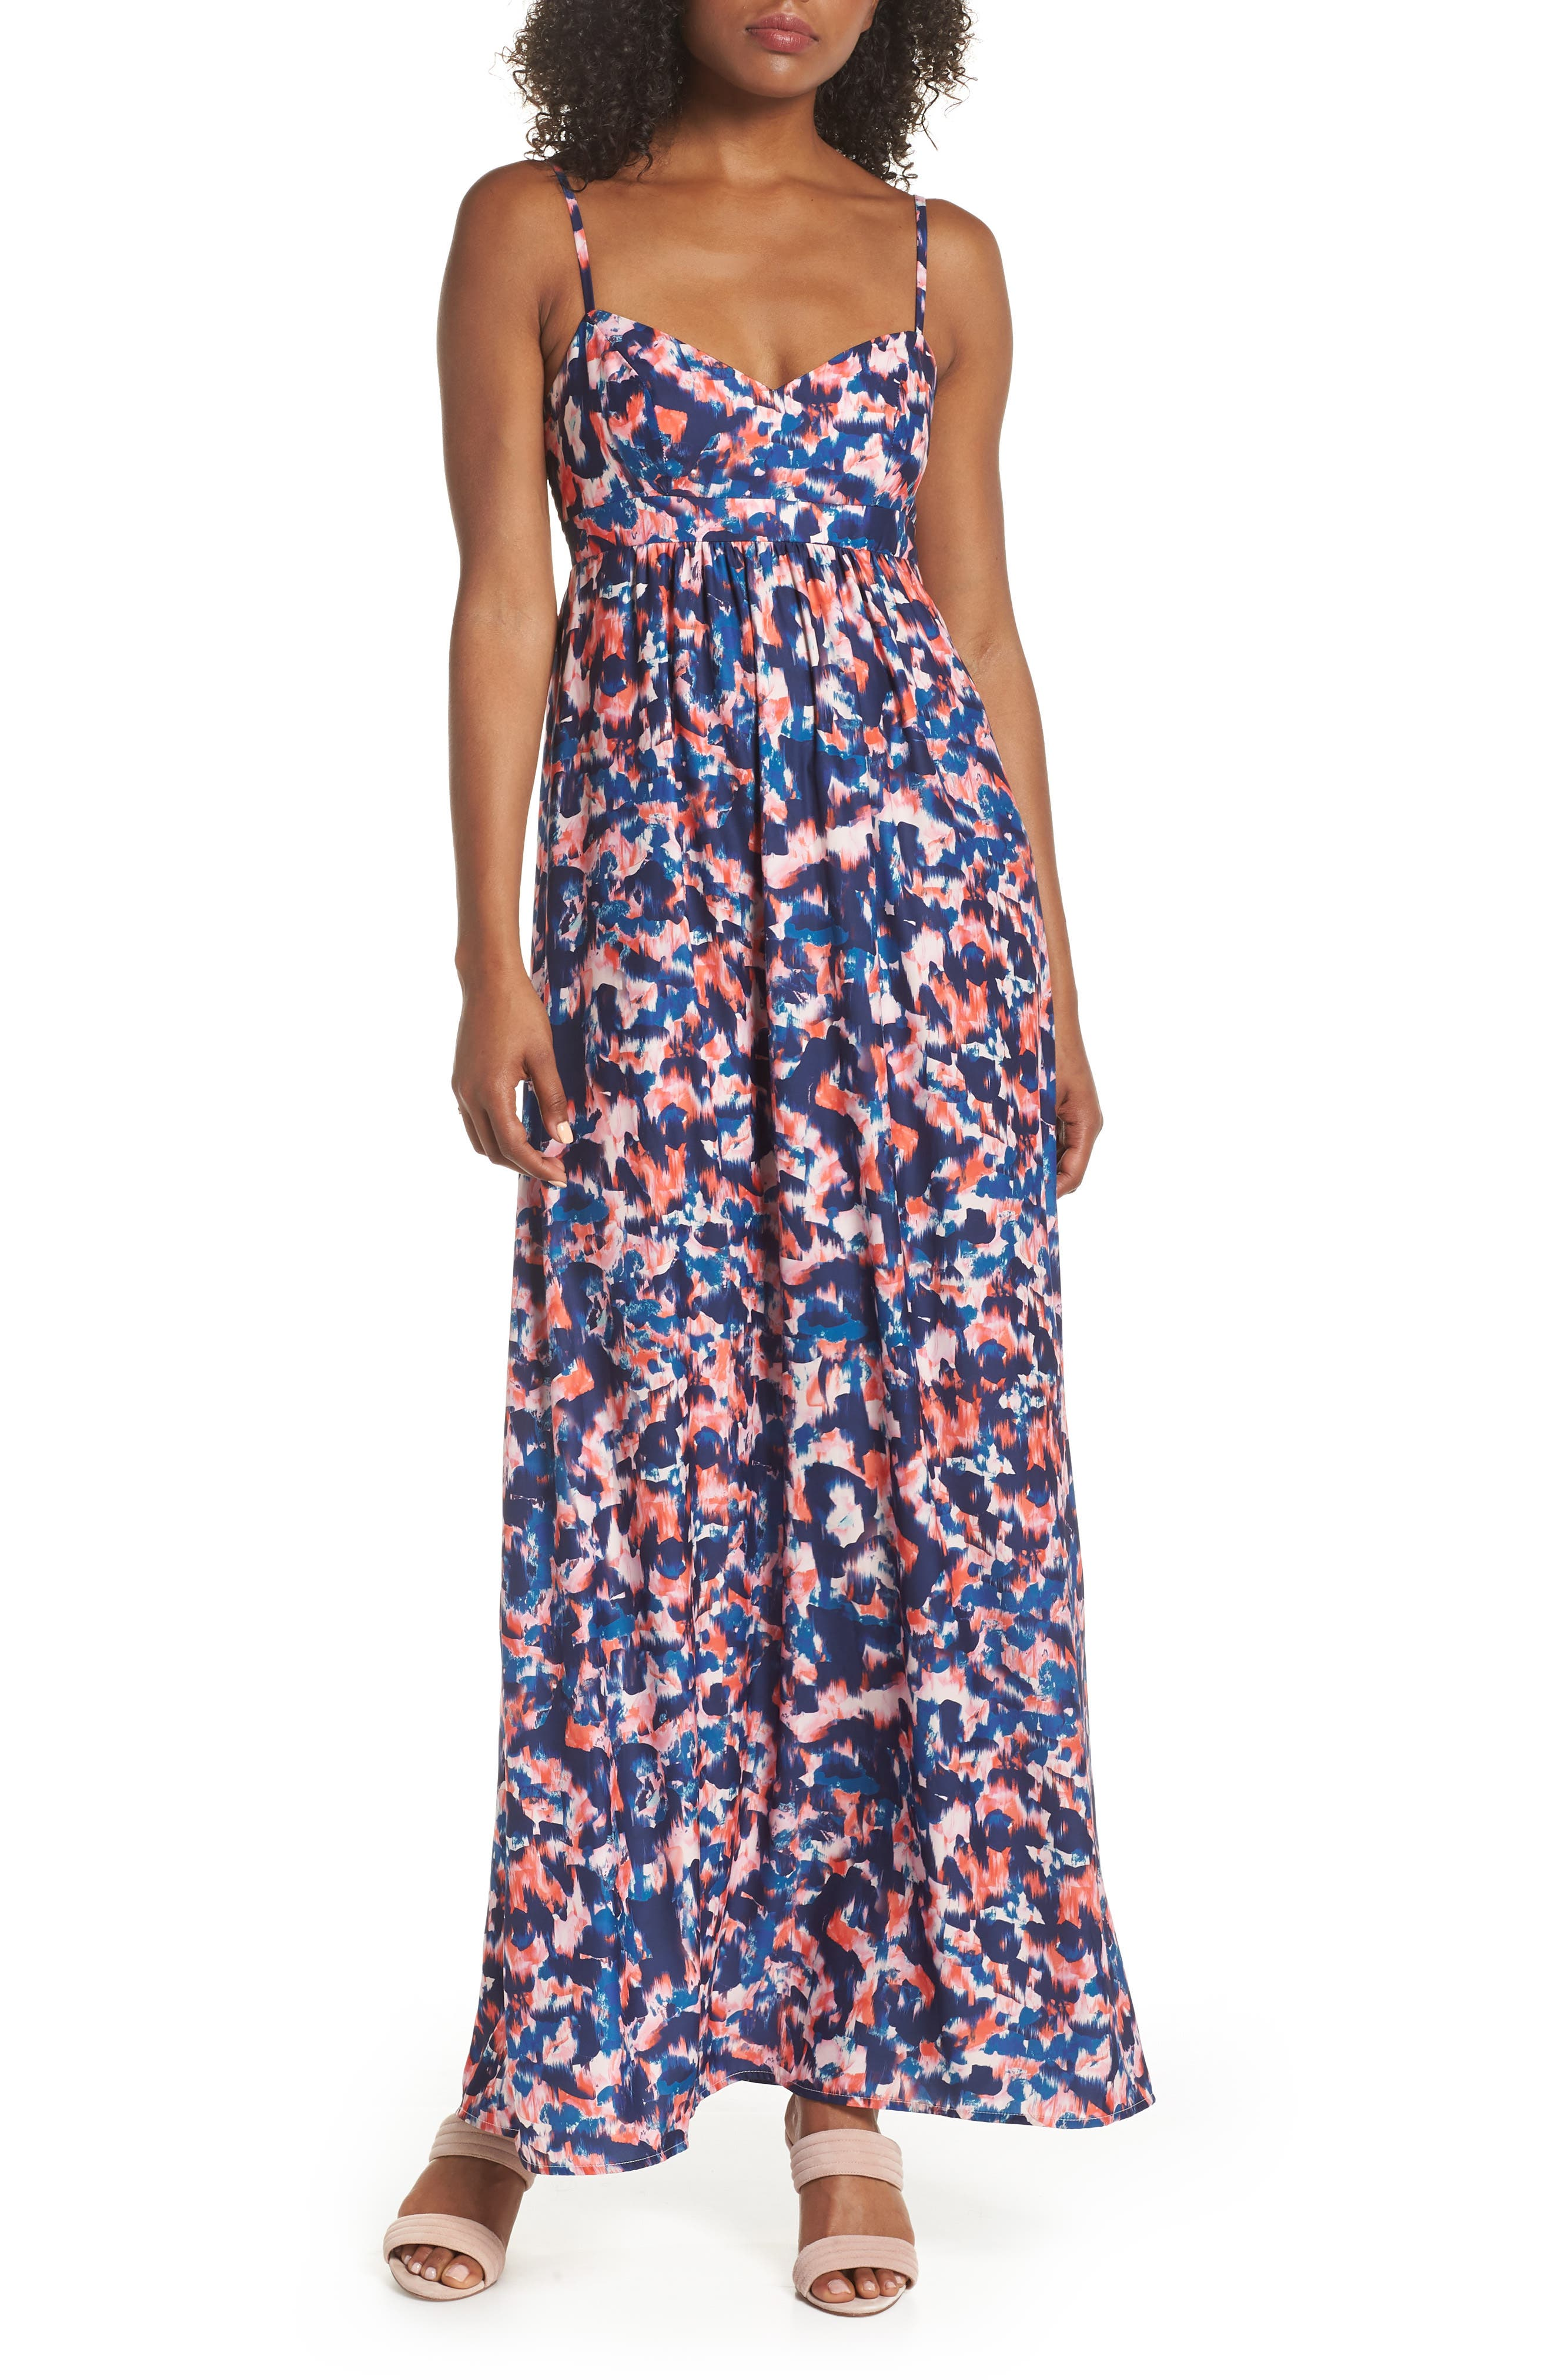 Main Image - Felicity & Coco Colby Woven Maxi Dress (Regular & Petite) (Nordstrom Exclusive)